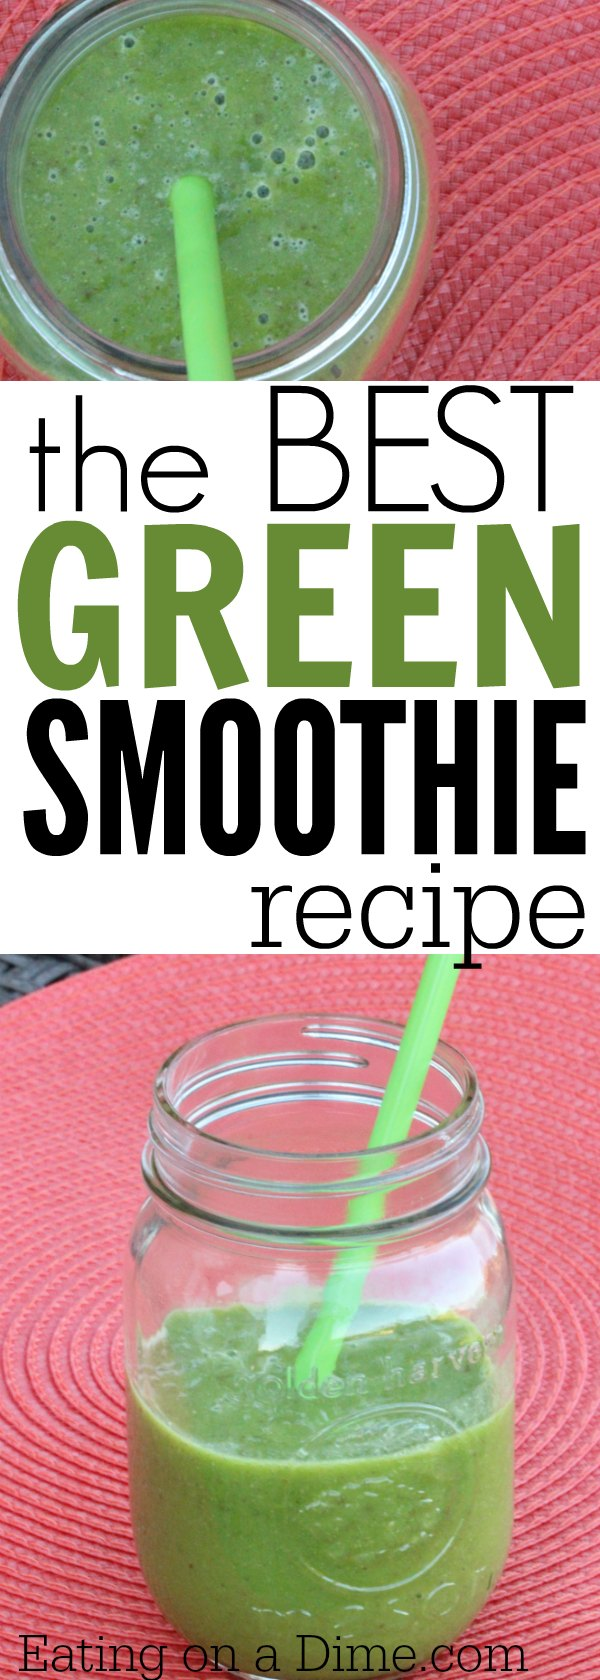 Try This Delicious Spinach Pineapple Smoothie Recipe This Is One Of My Favorite Green Smoothie